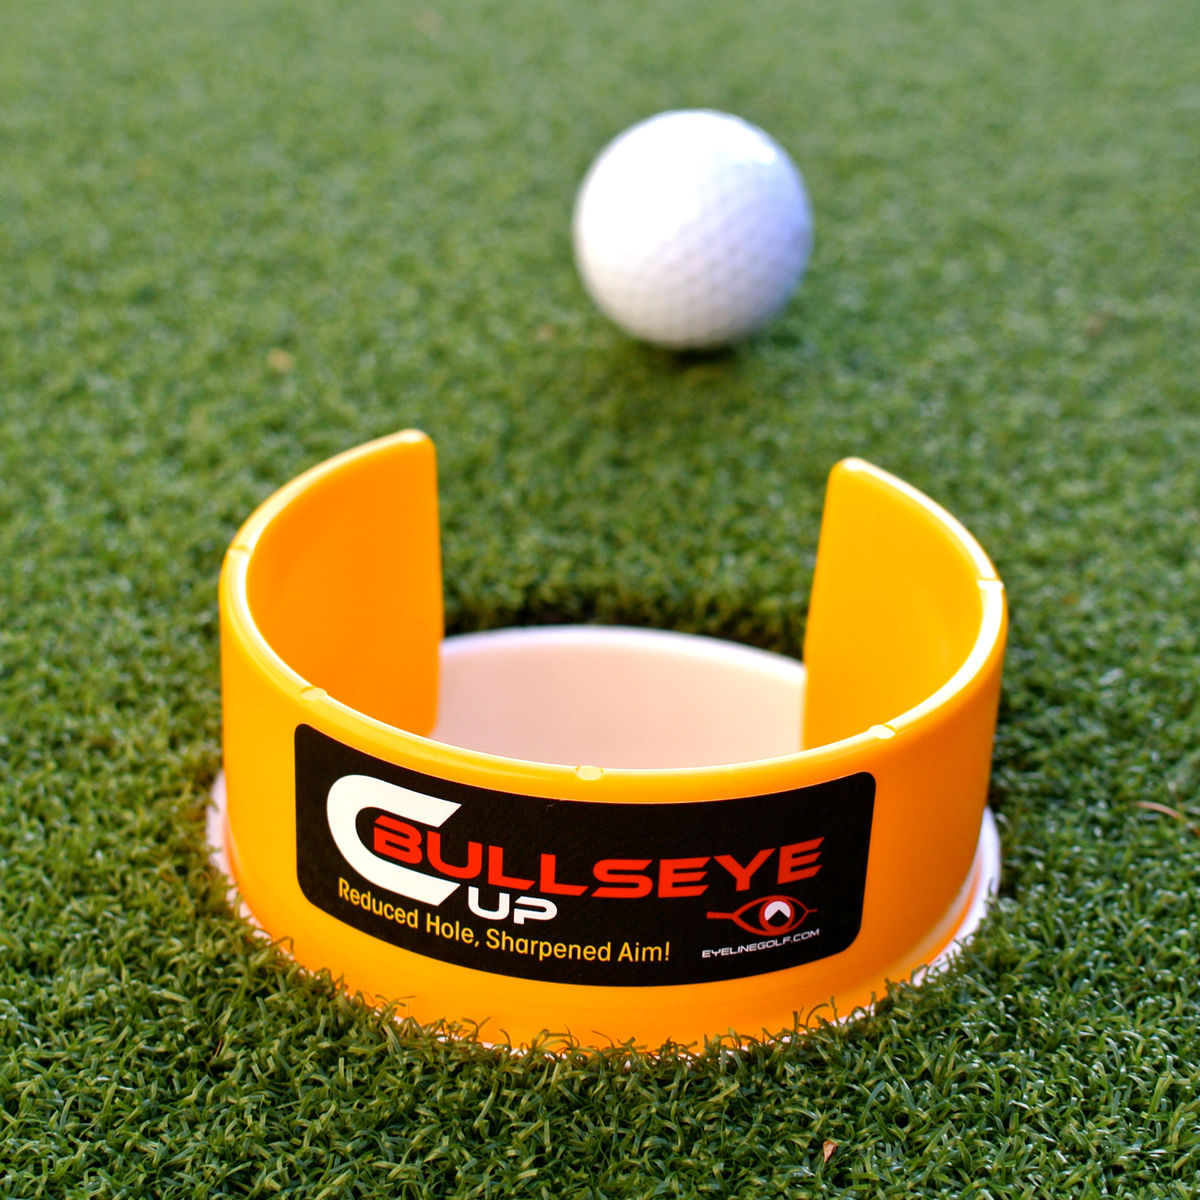 Eyeline Golf - Bullseye cup - Event Stuff Ltd Owns Putterfingers.com!